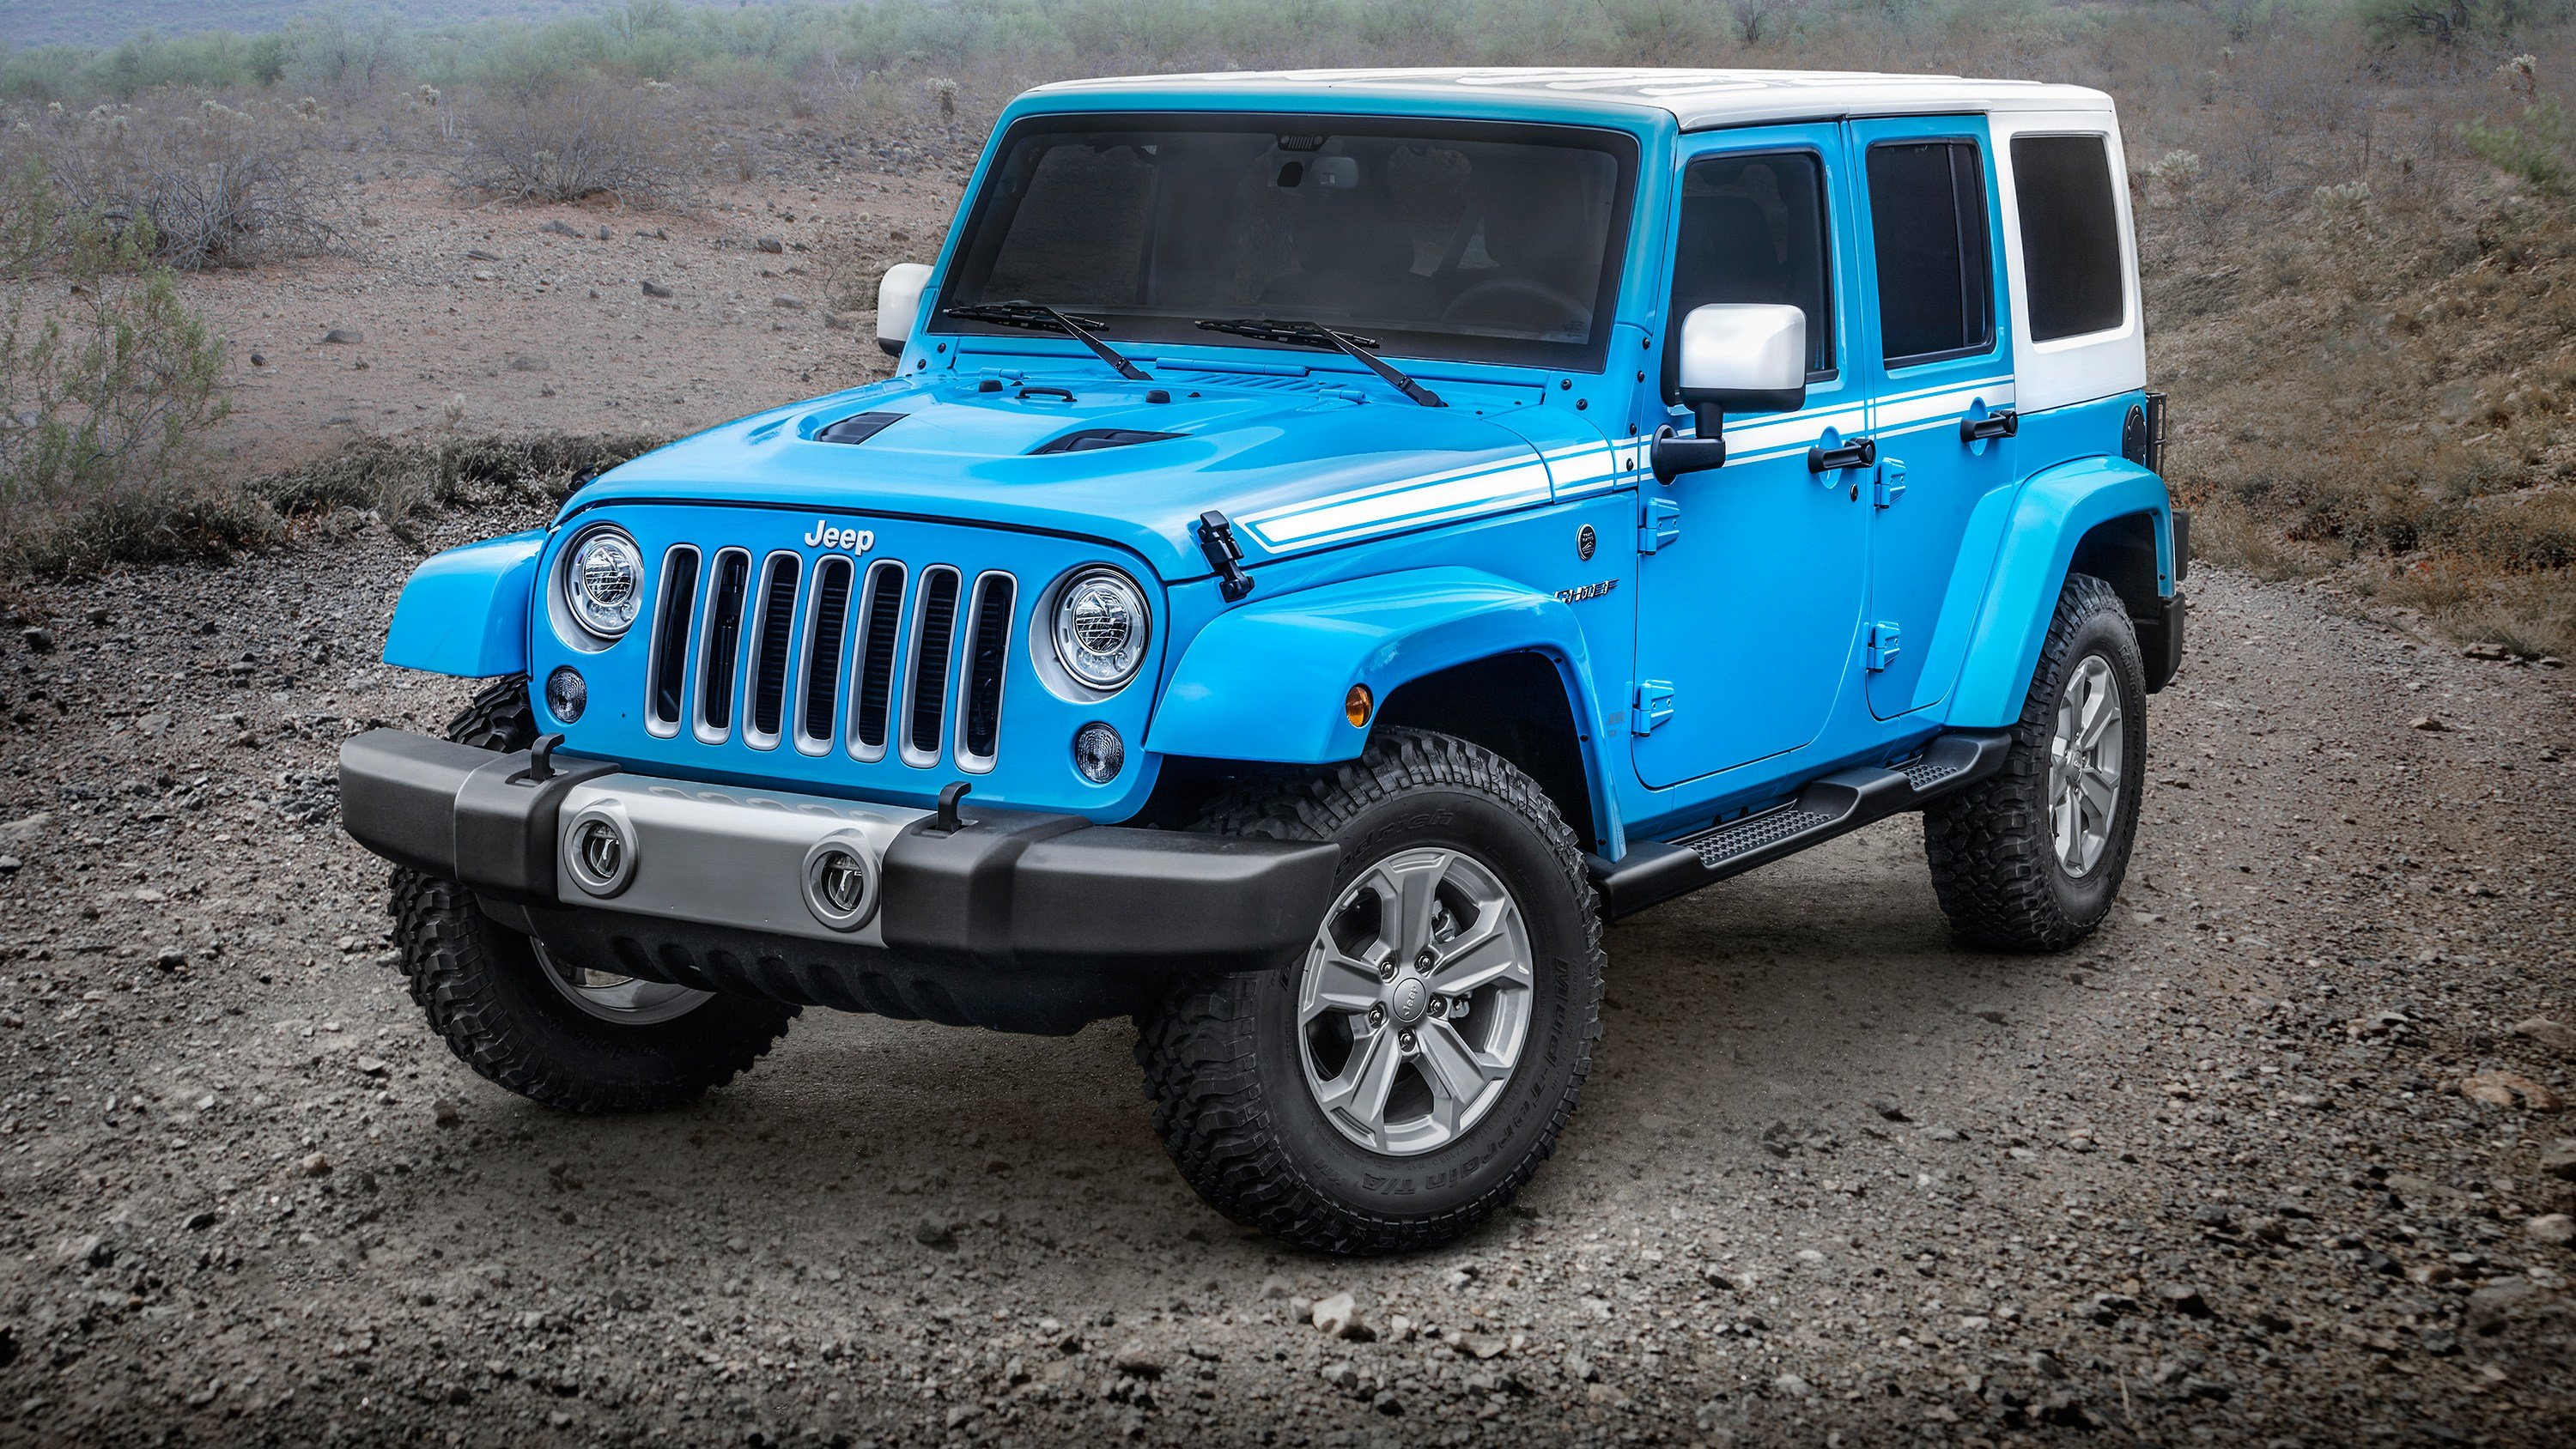 Latest 2017 Jeep Wrangler Unlimited Chief Wallpaper Hd Car Wallpapers Id 7778 Free Download